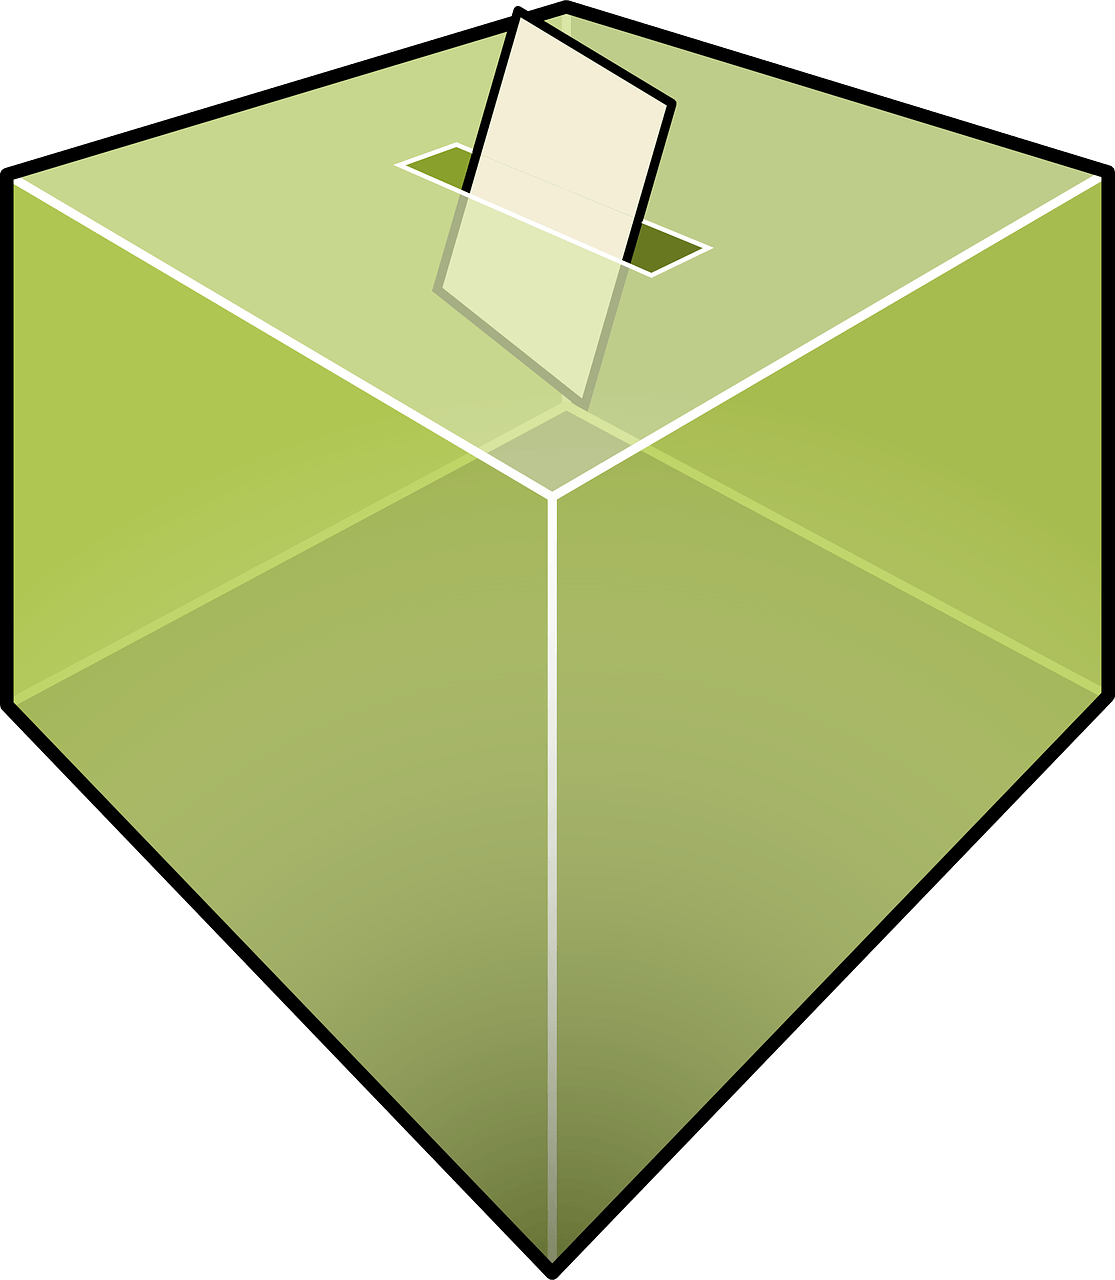 The Best Resources For Teaching About The Mid-Term Elections